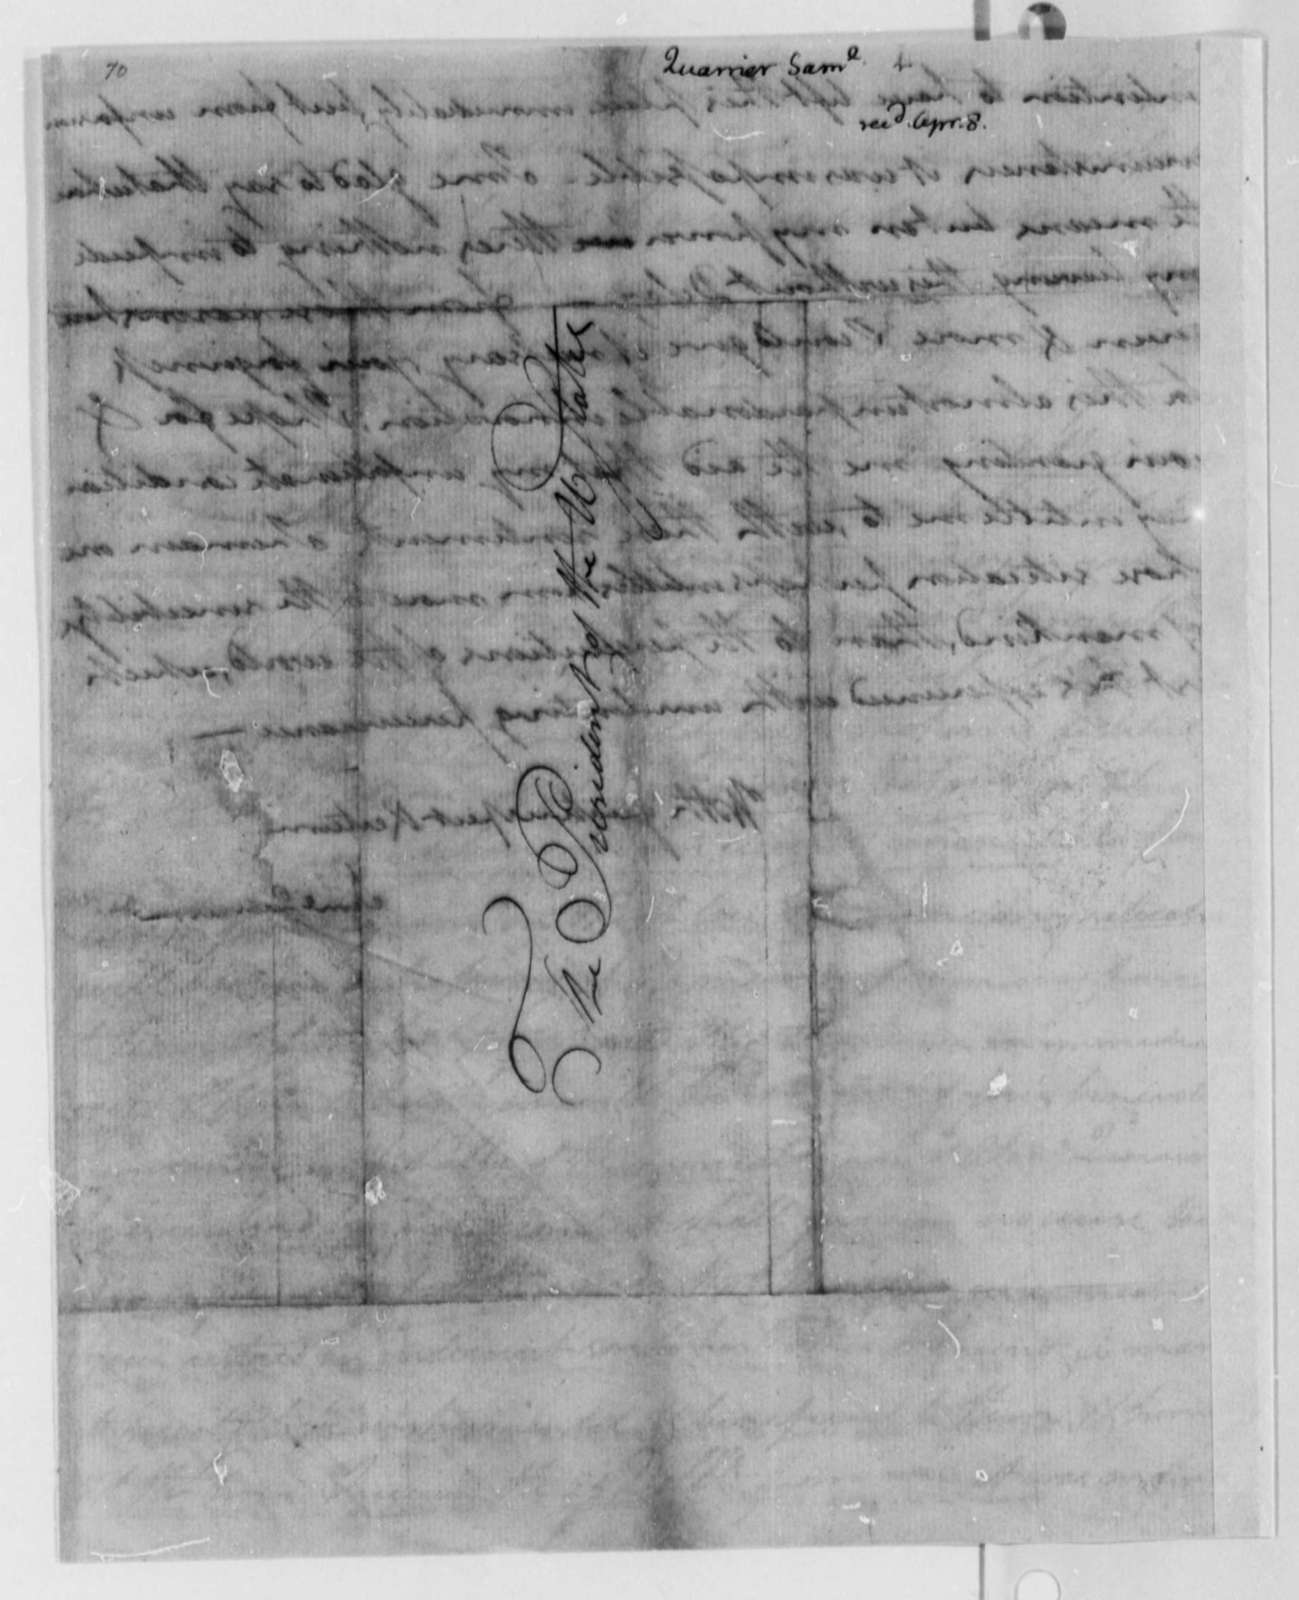 Samuel Quarrier to Thomas Jefferson, April 8, 1802